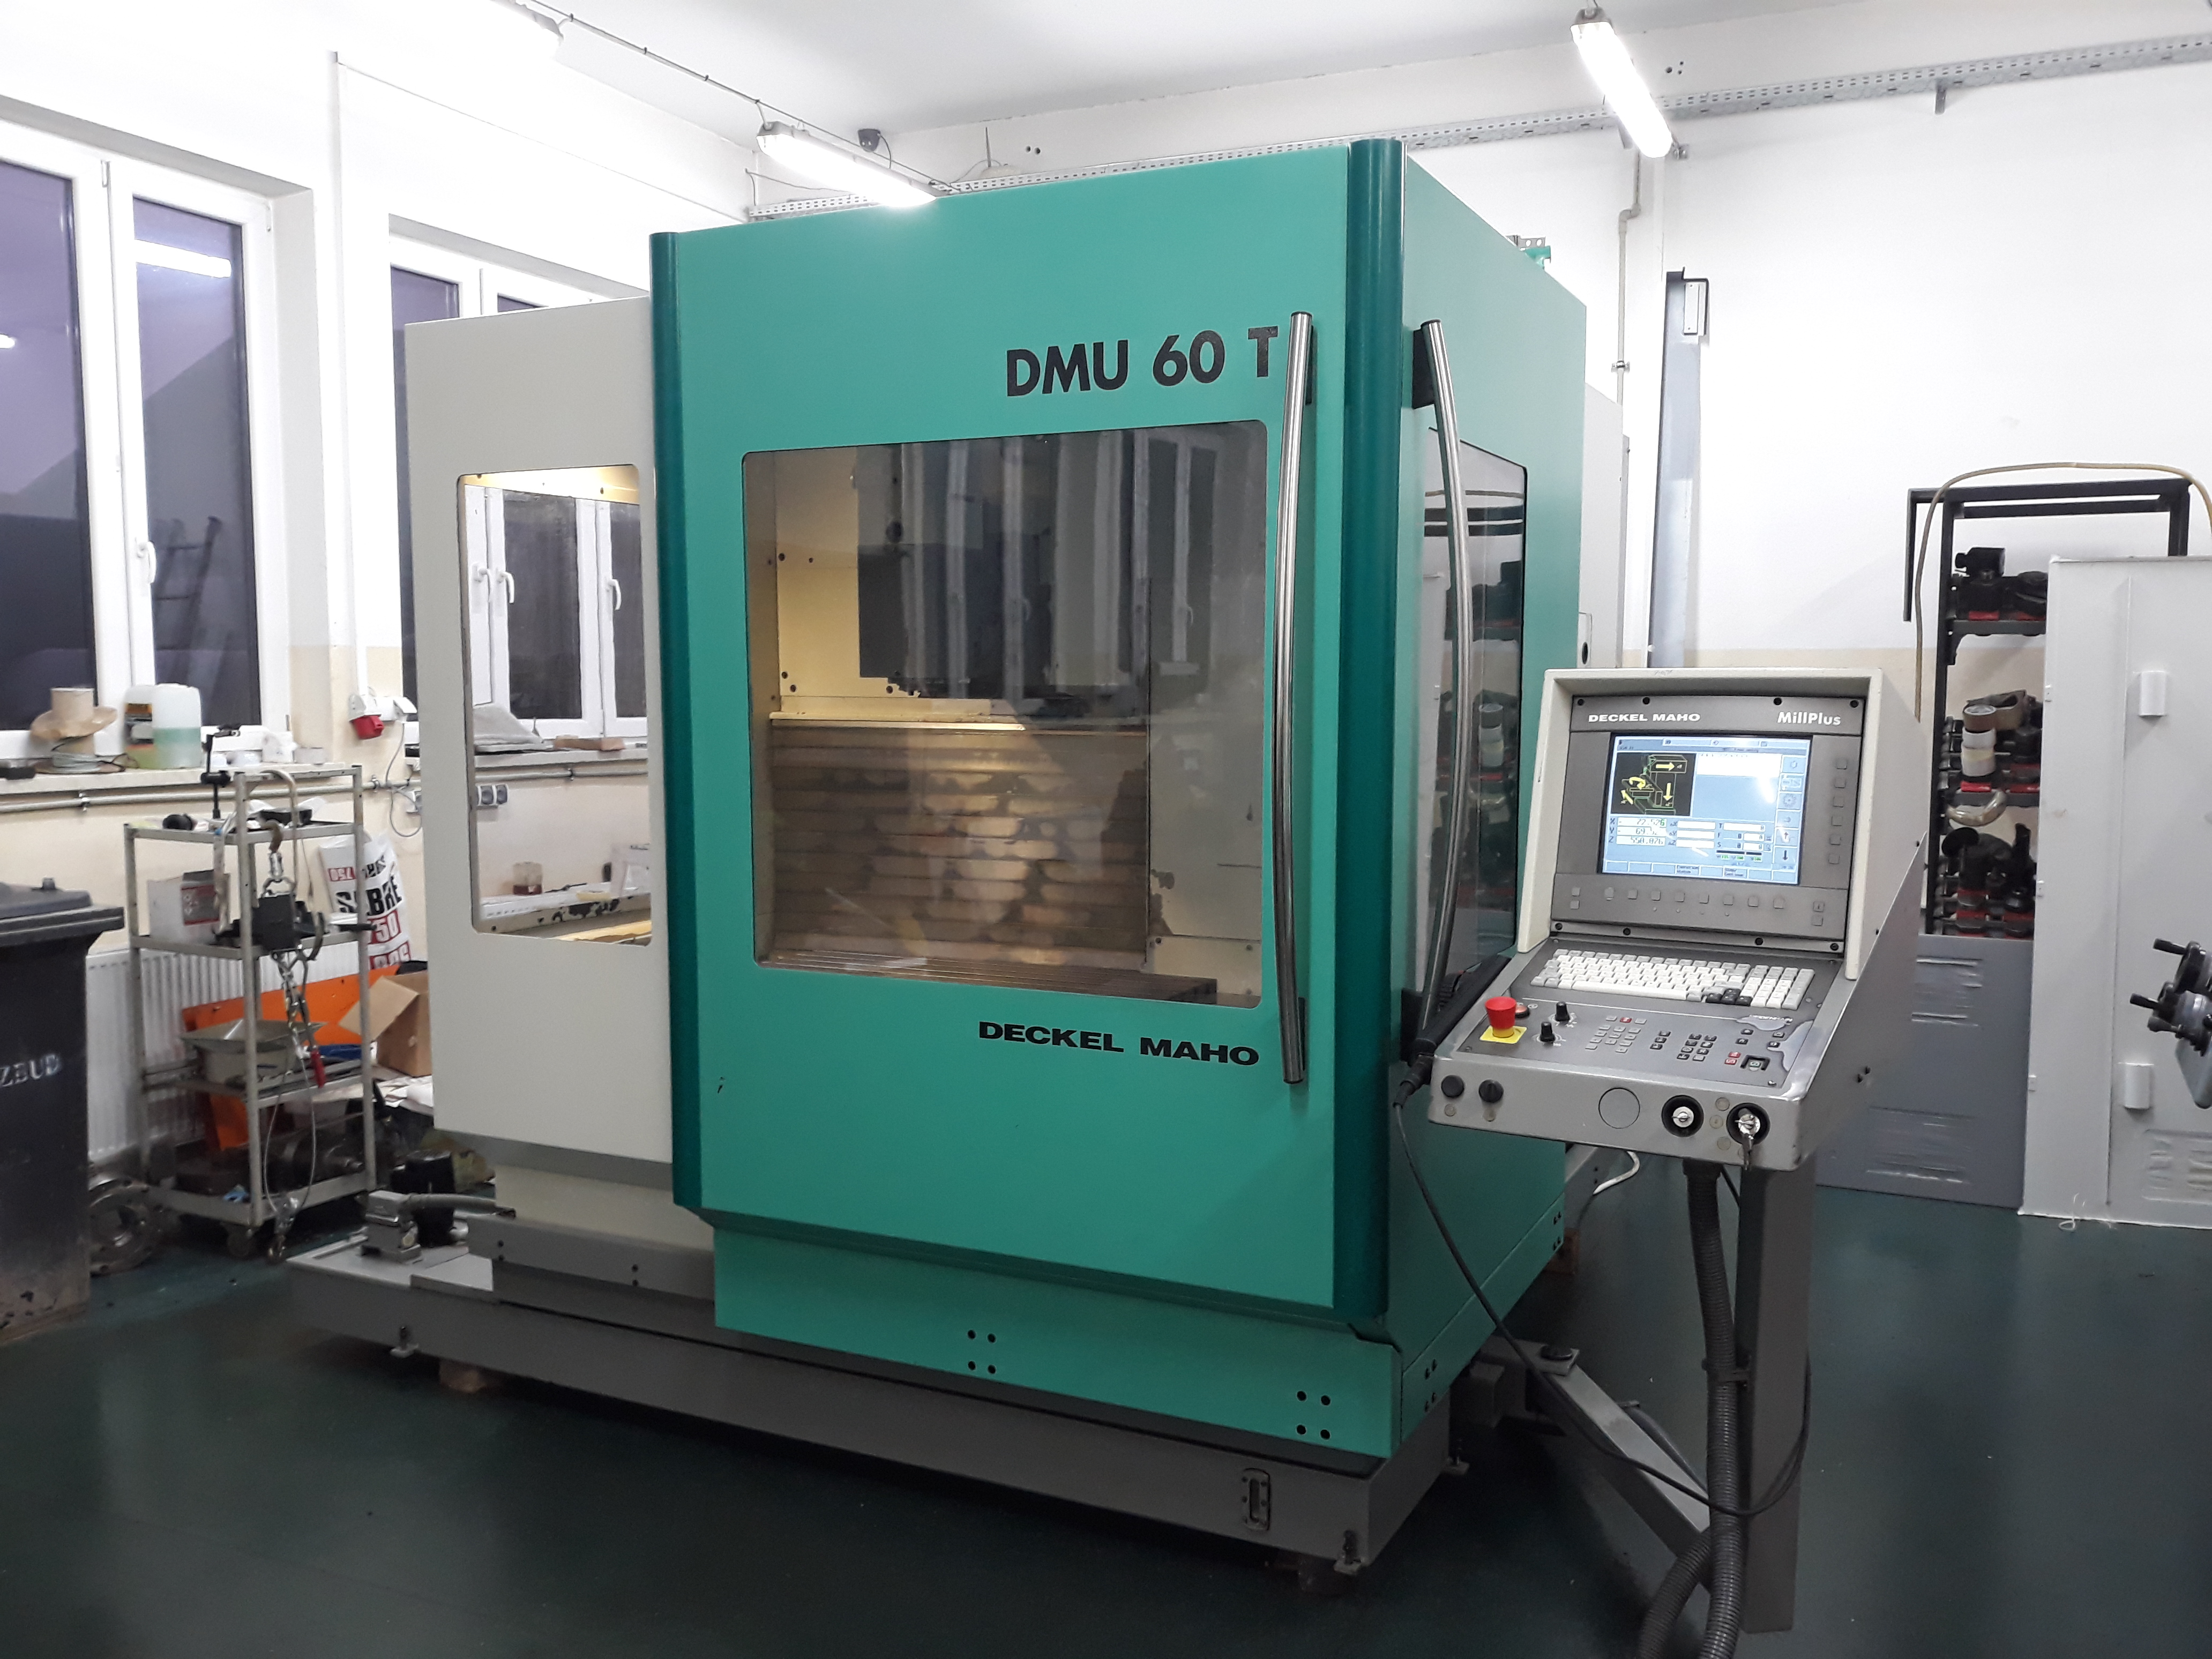 Deckel Maho DMU 60T Machining center - vertical - Exapro